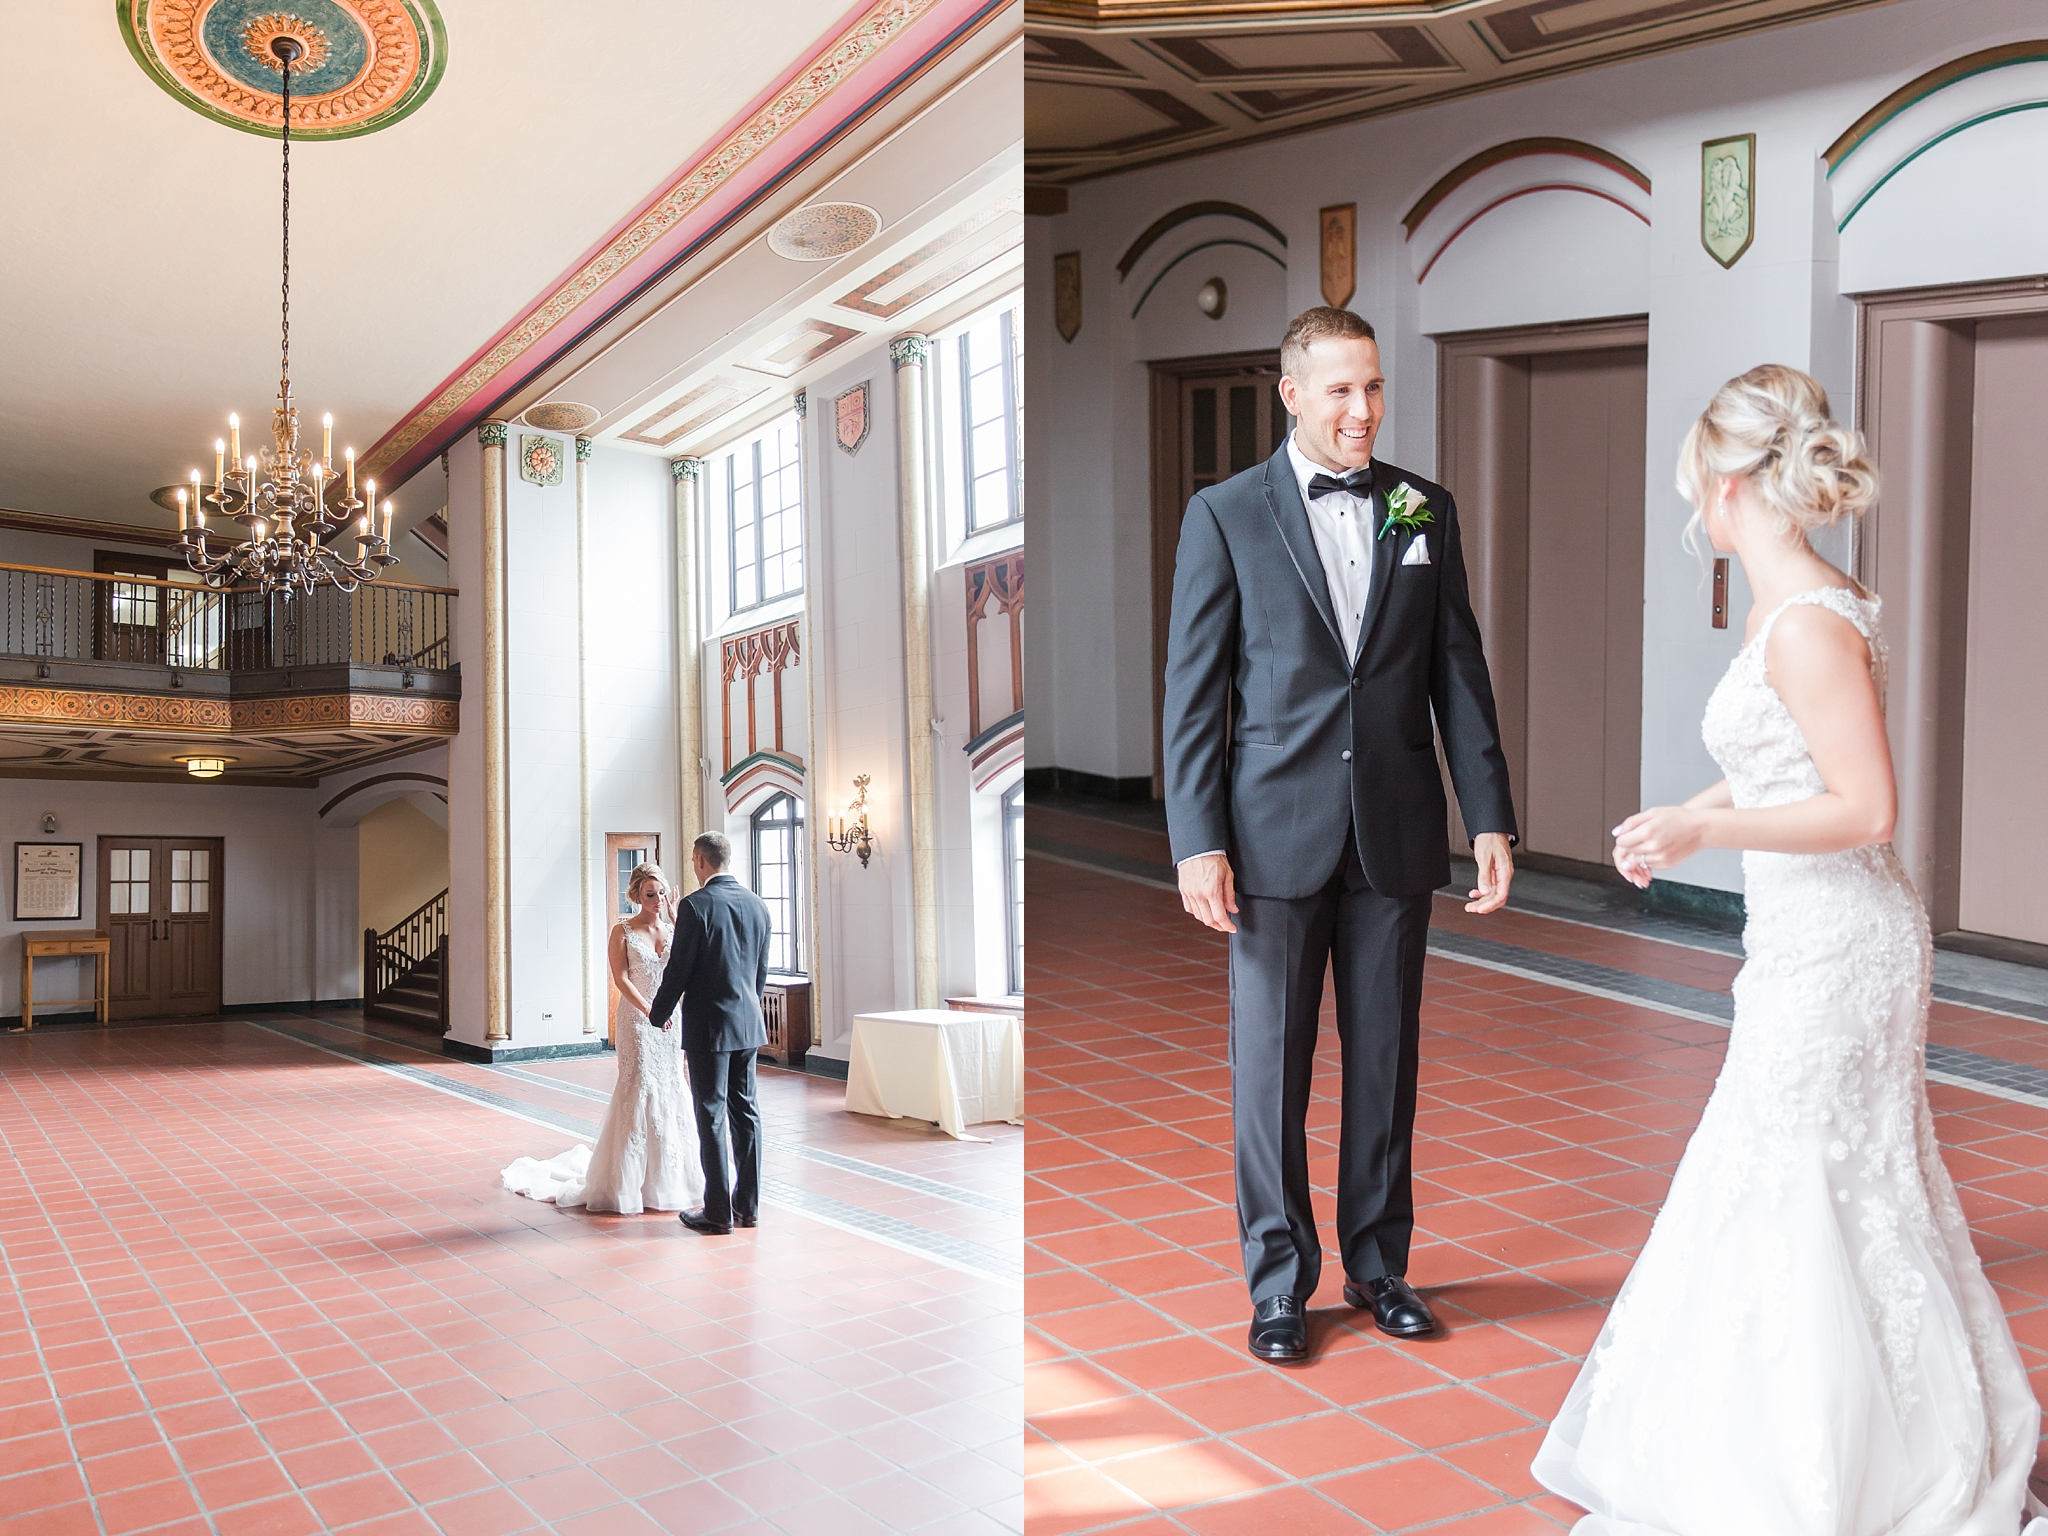 candid-romantic-wedding-photos-at-the-masonic-temple-belle-isle-detroit-institute-of-arts-in-detroit-michigan-by-courtney-carolyn-photography_0021.jpg